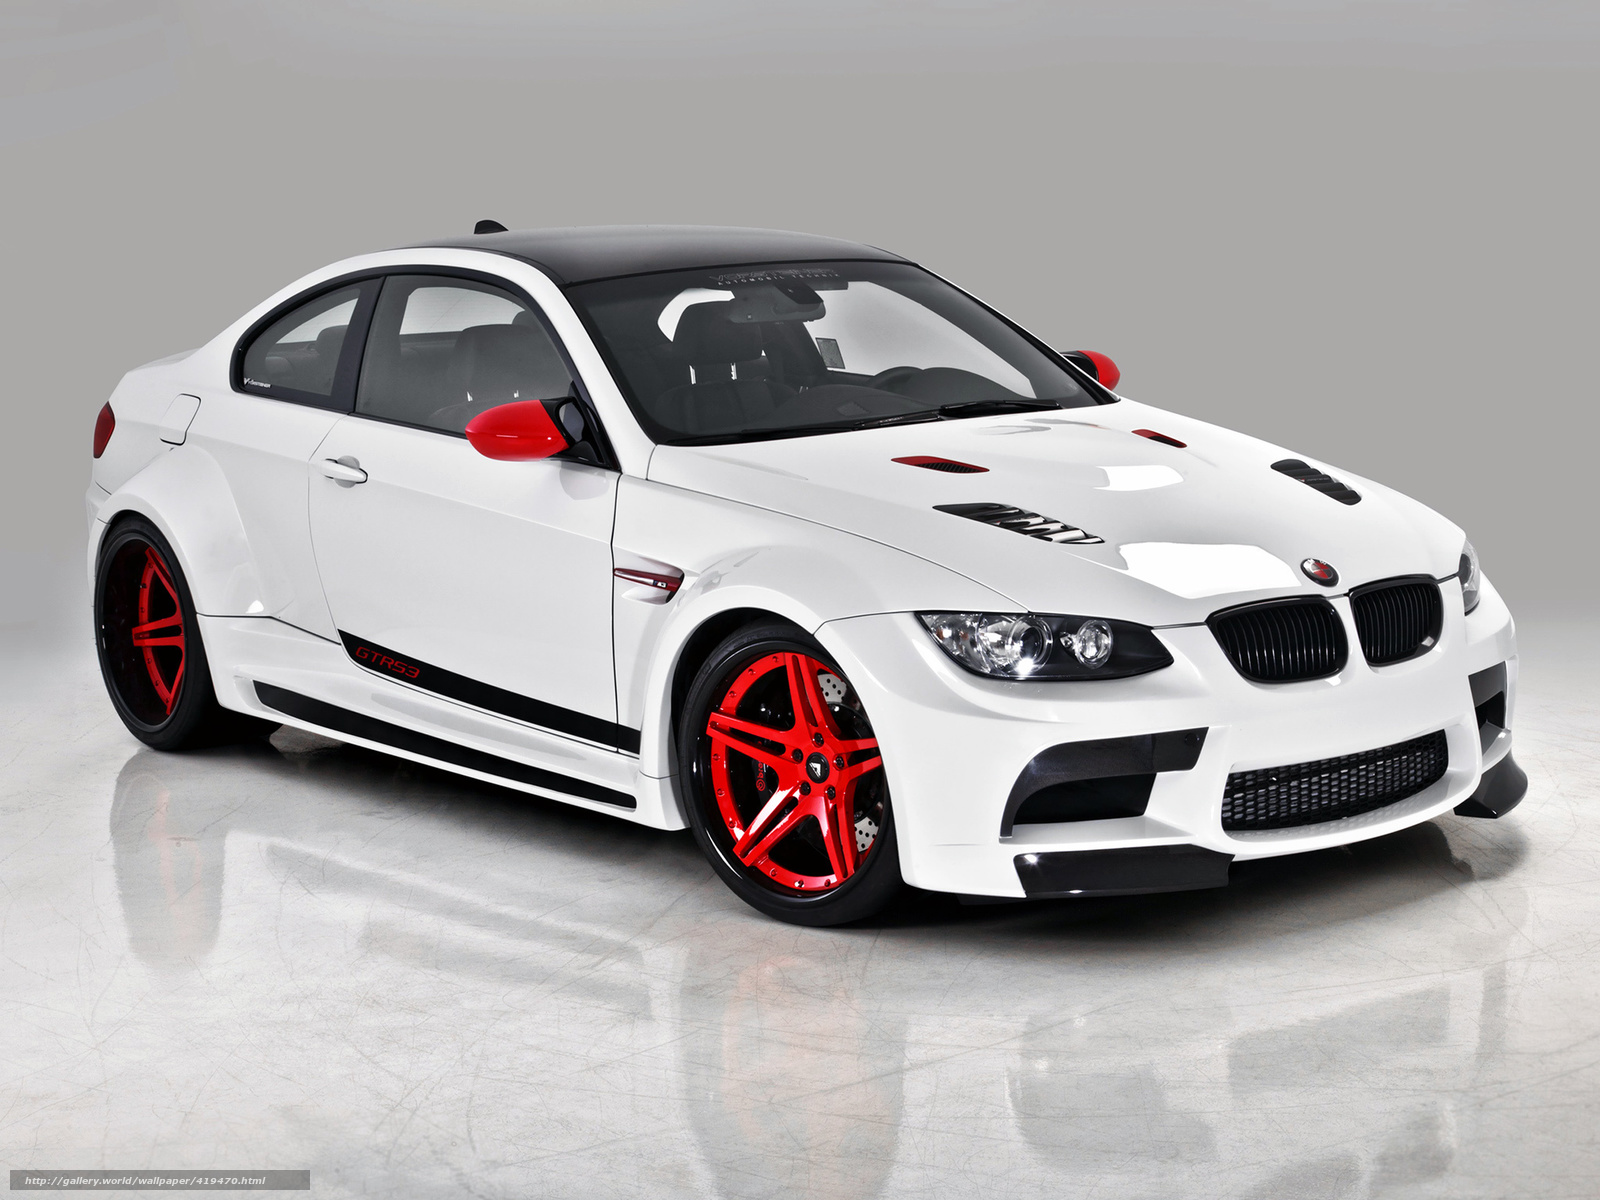 bmw m3 gtrs3 wallpapers - photo #17